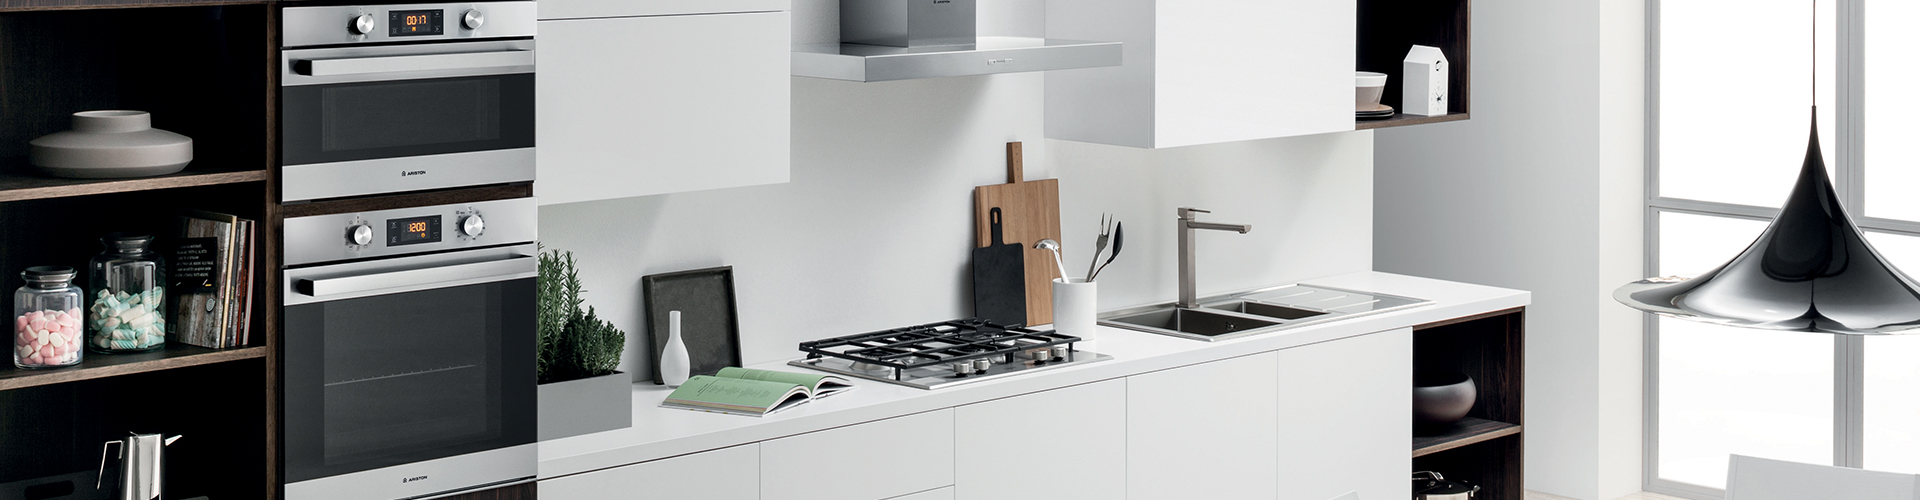 Kitchen Appliances | Buy Kitchen Cooking Appliances Ariston